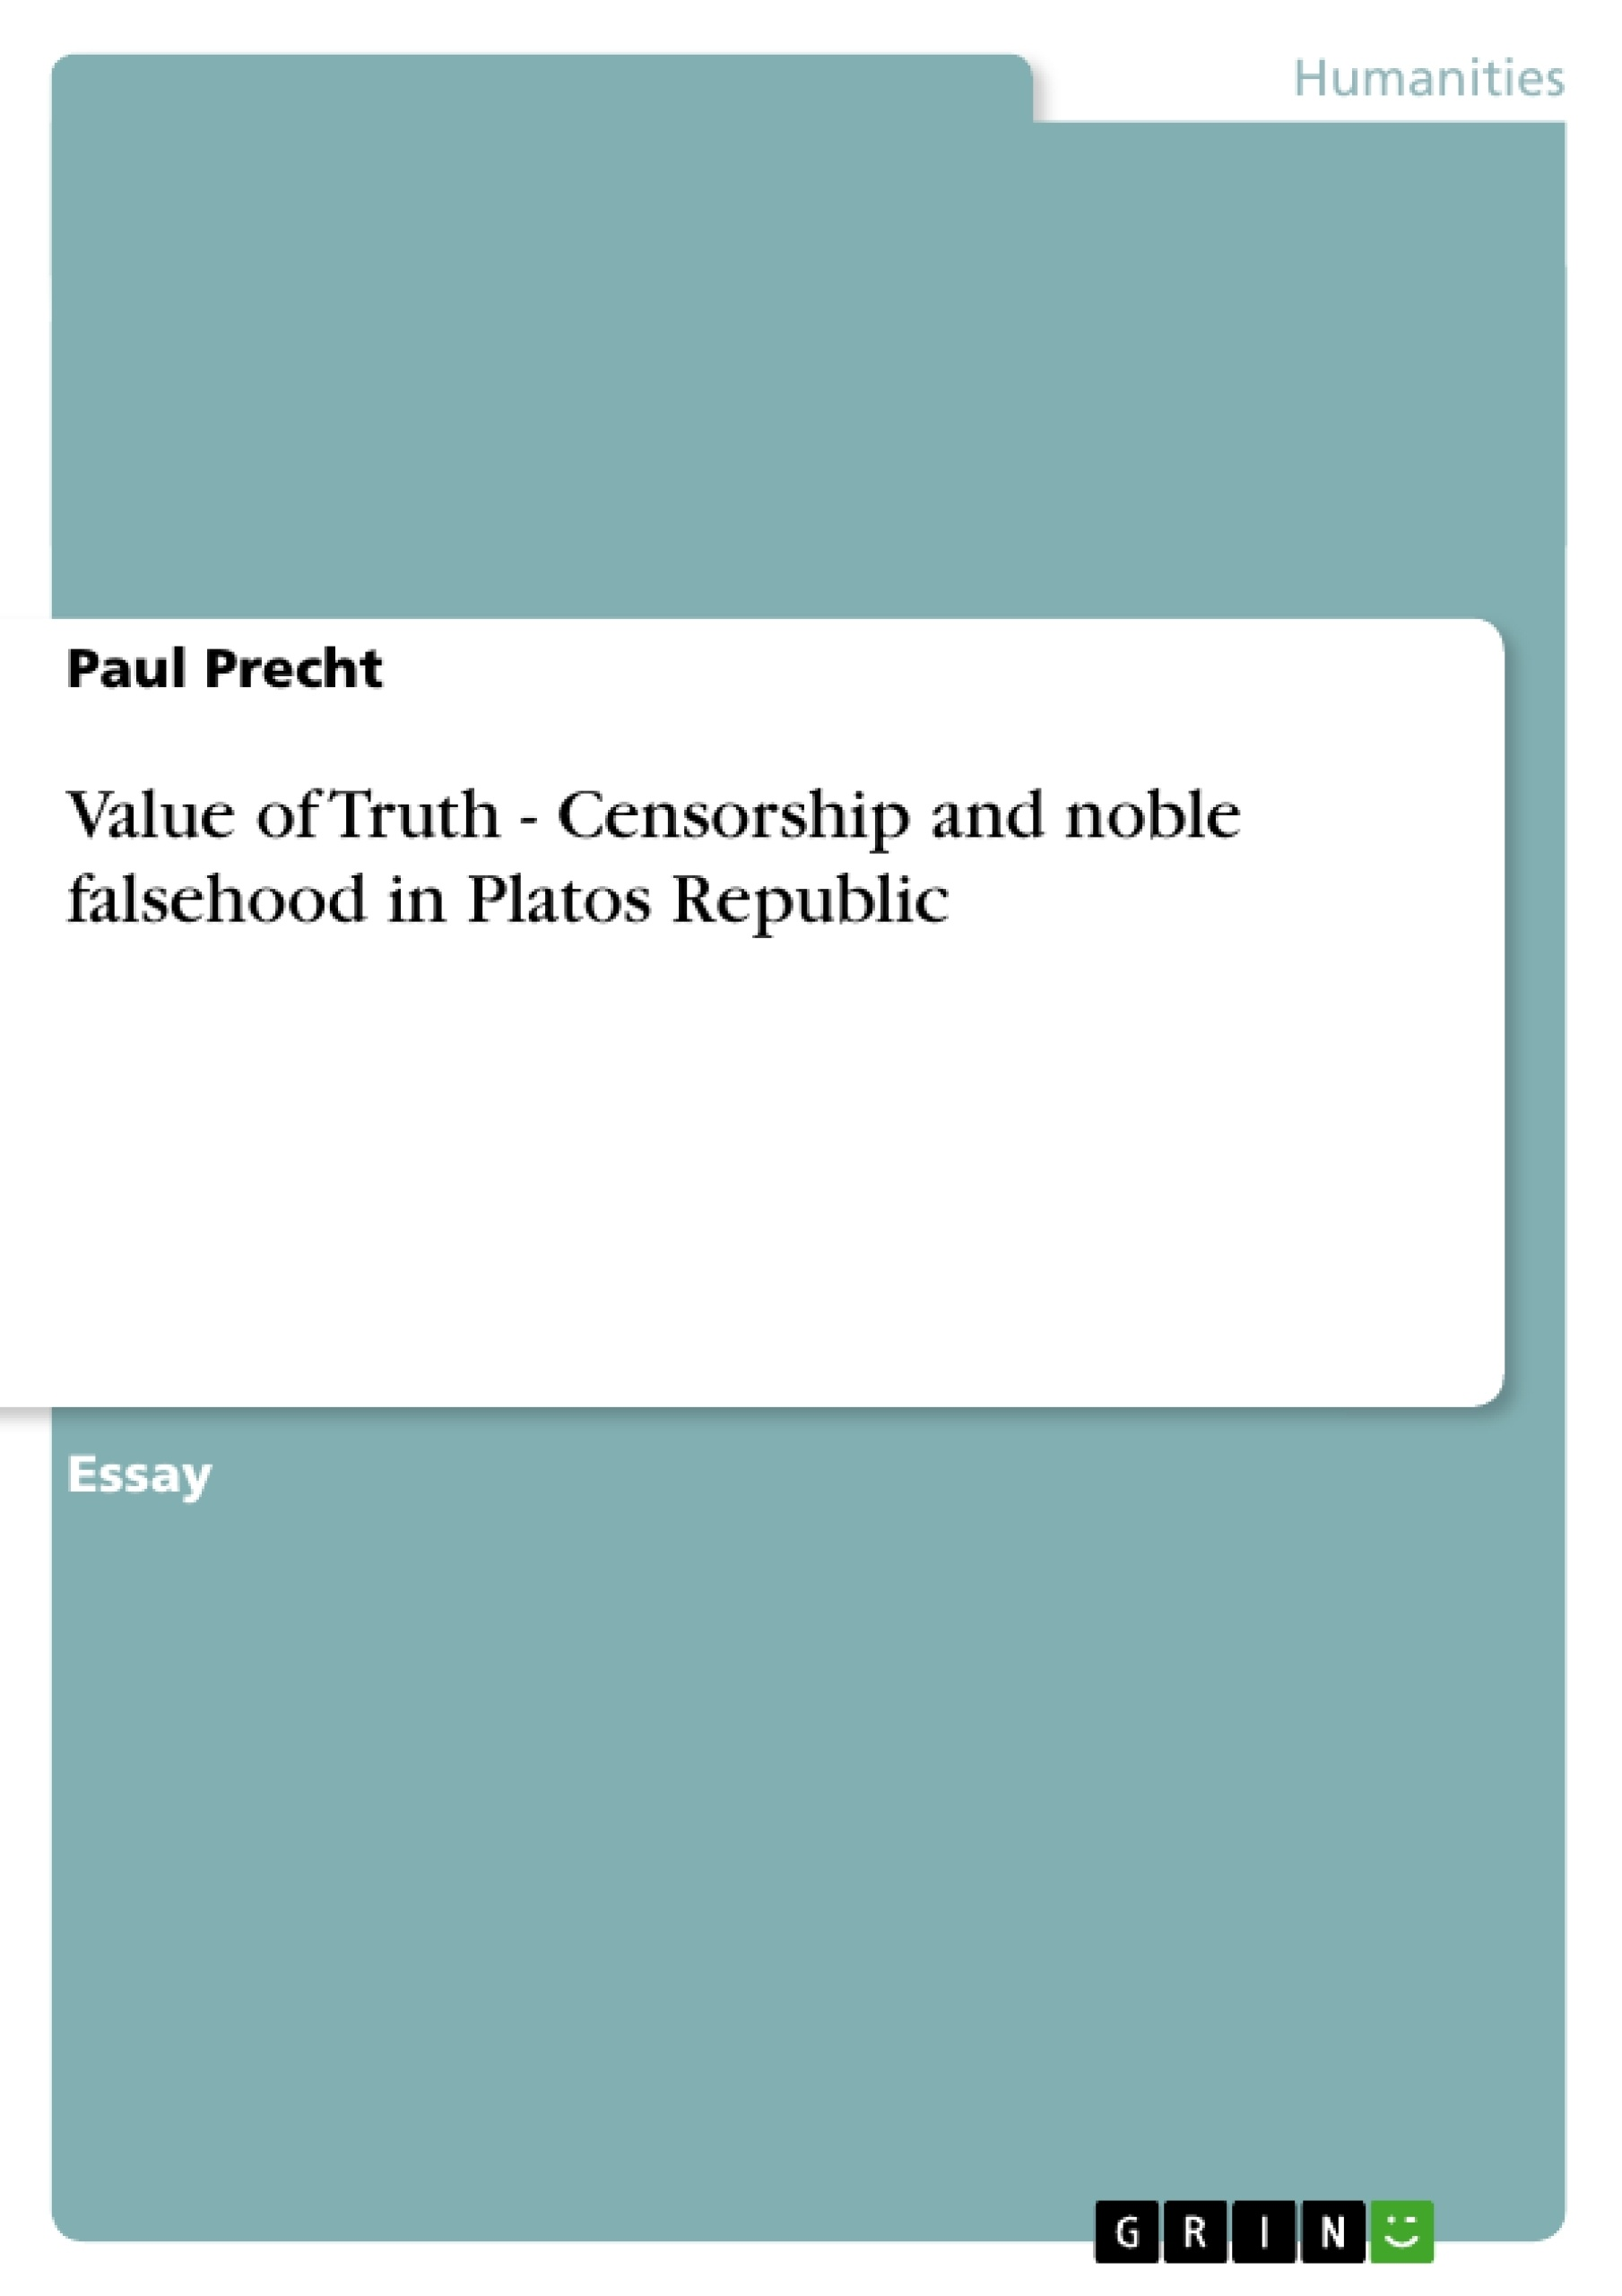 Title: Value of Truth - Censorship and noble falsehood in Platos Republic